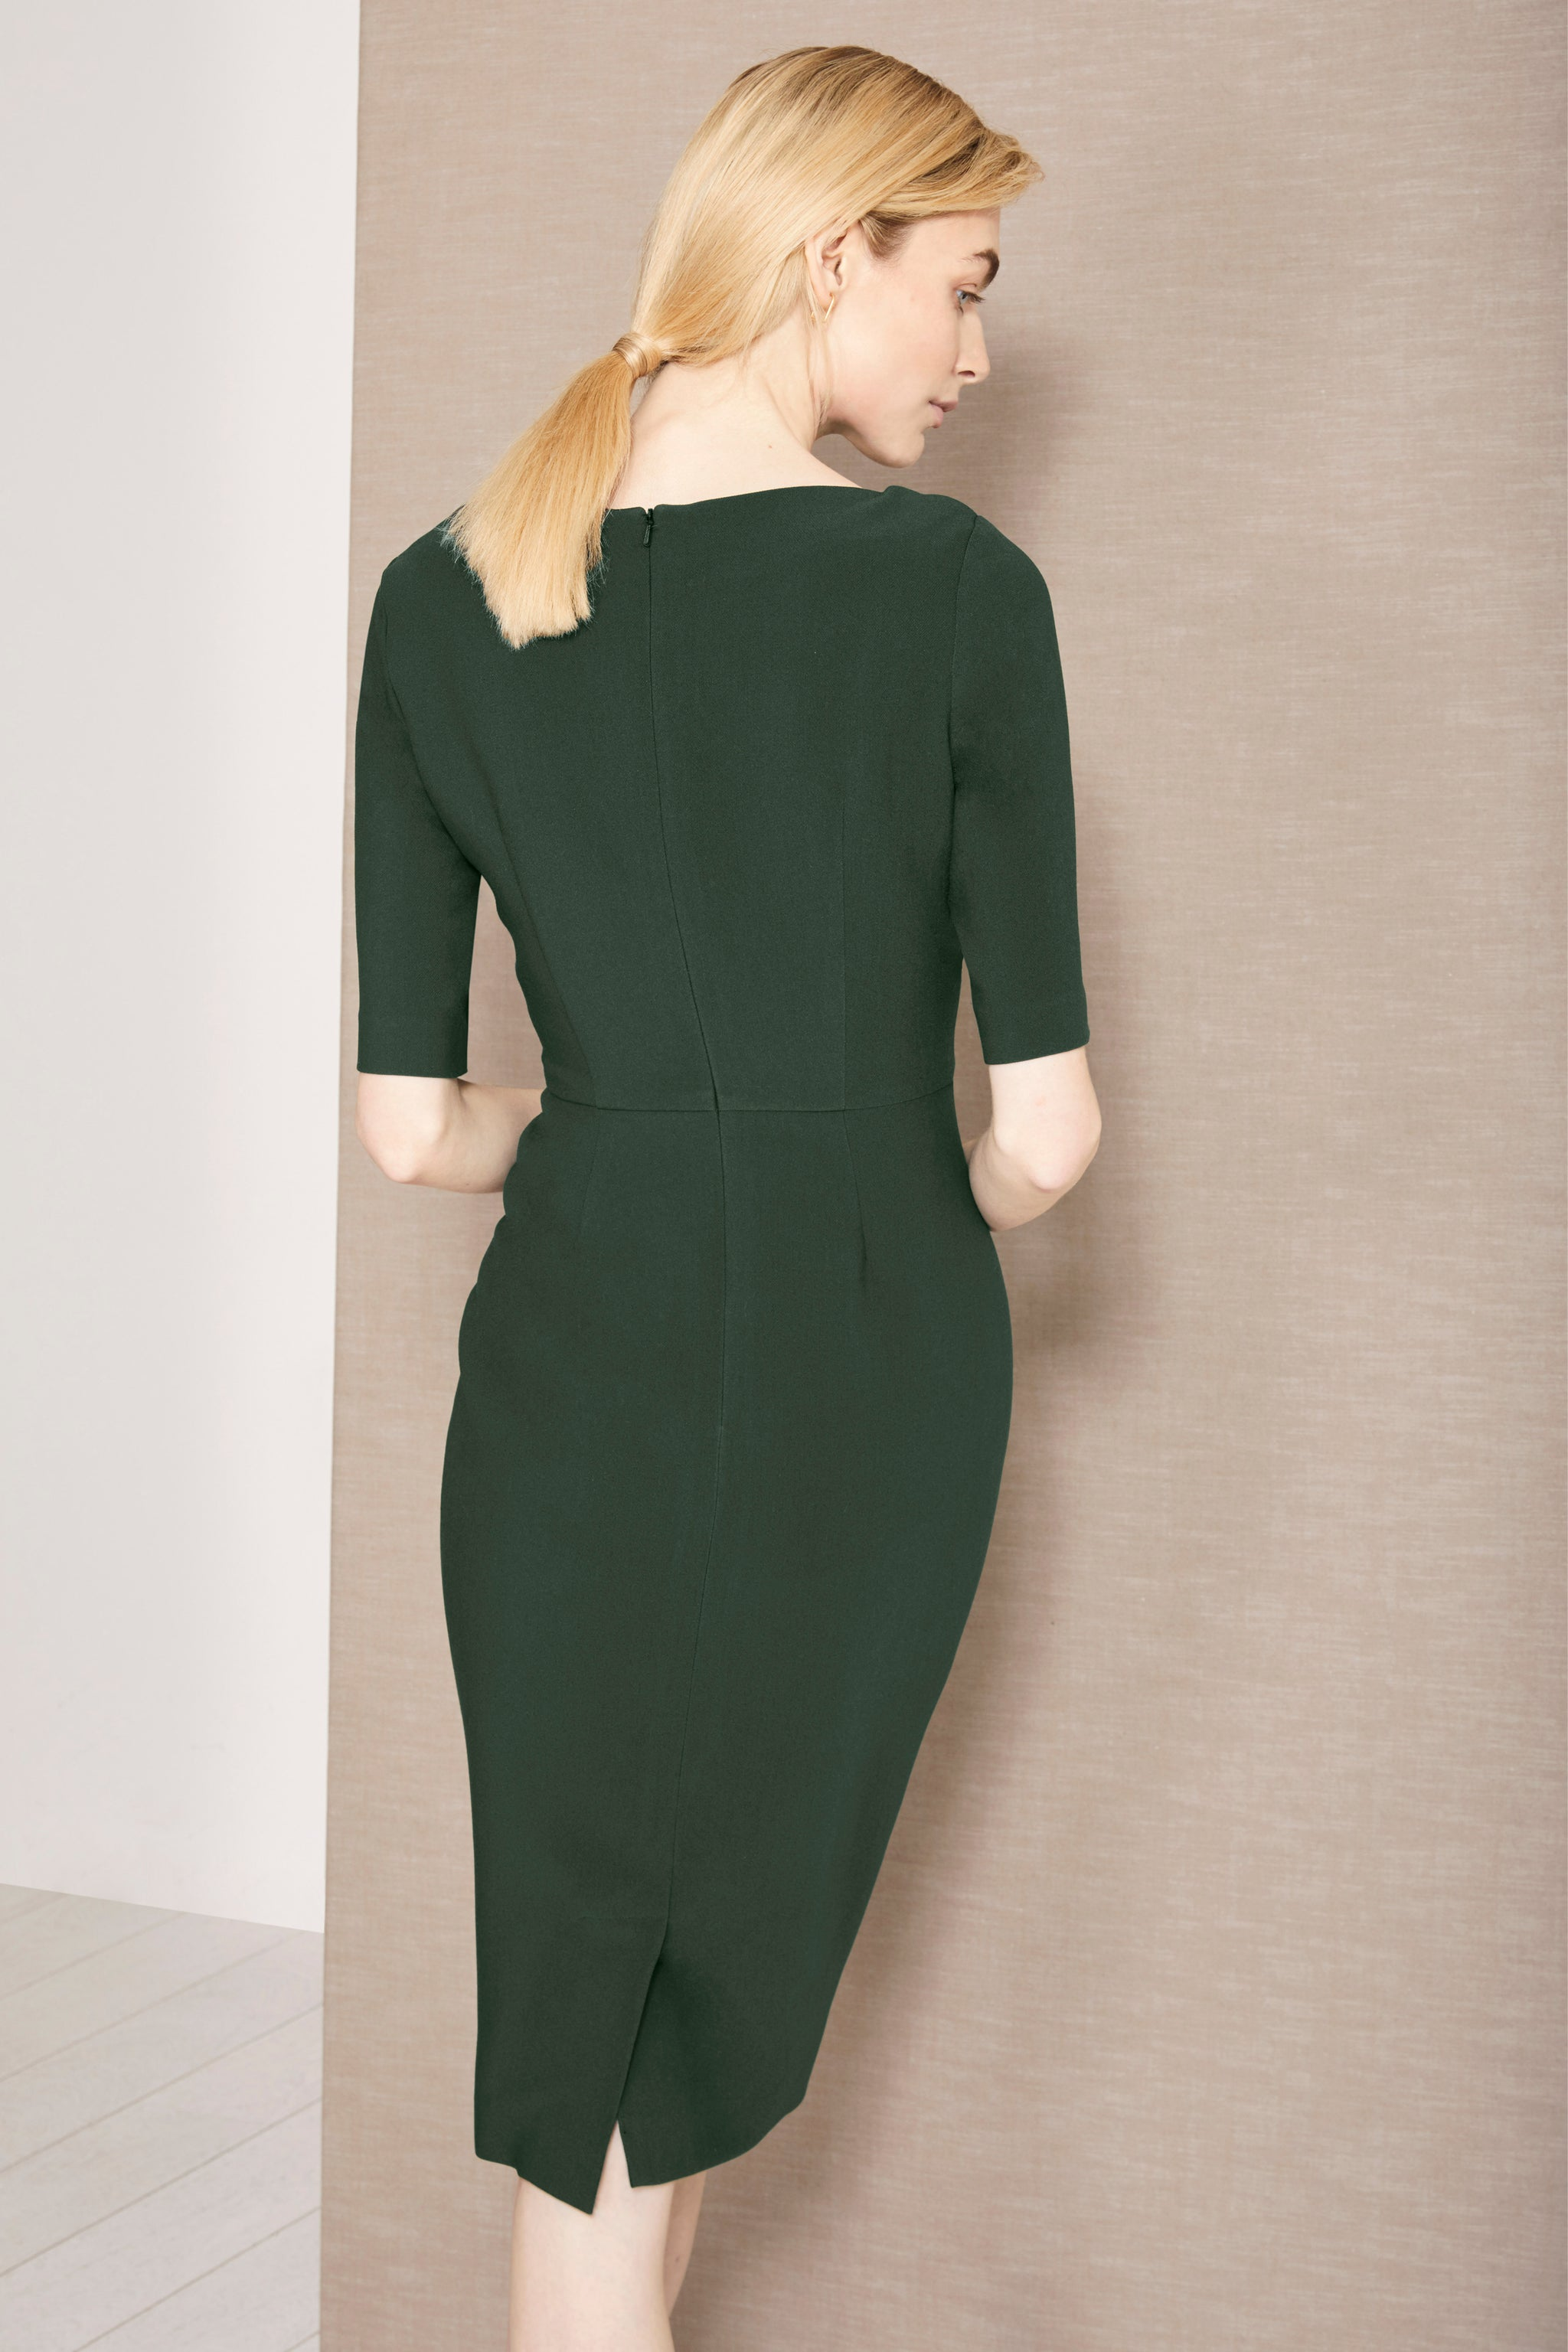 Thurloe Green Dress